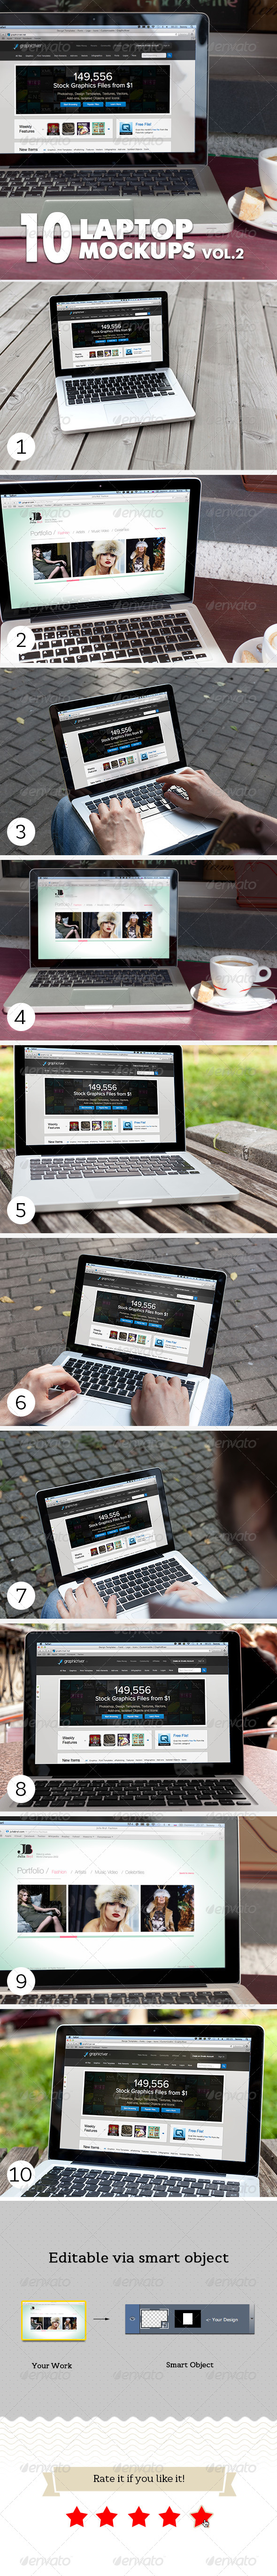 GraphicRiver 10 Laptop Mockups Vol.2 5659619